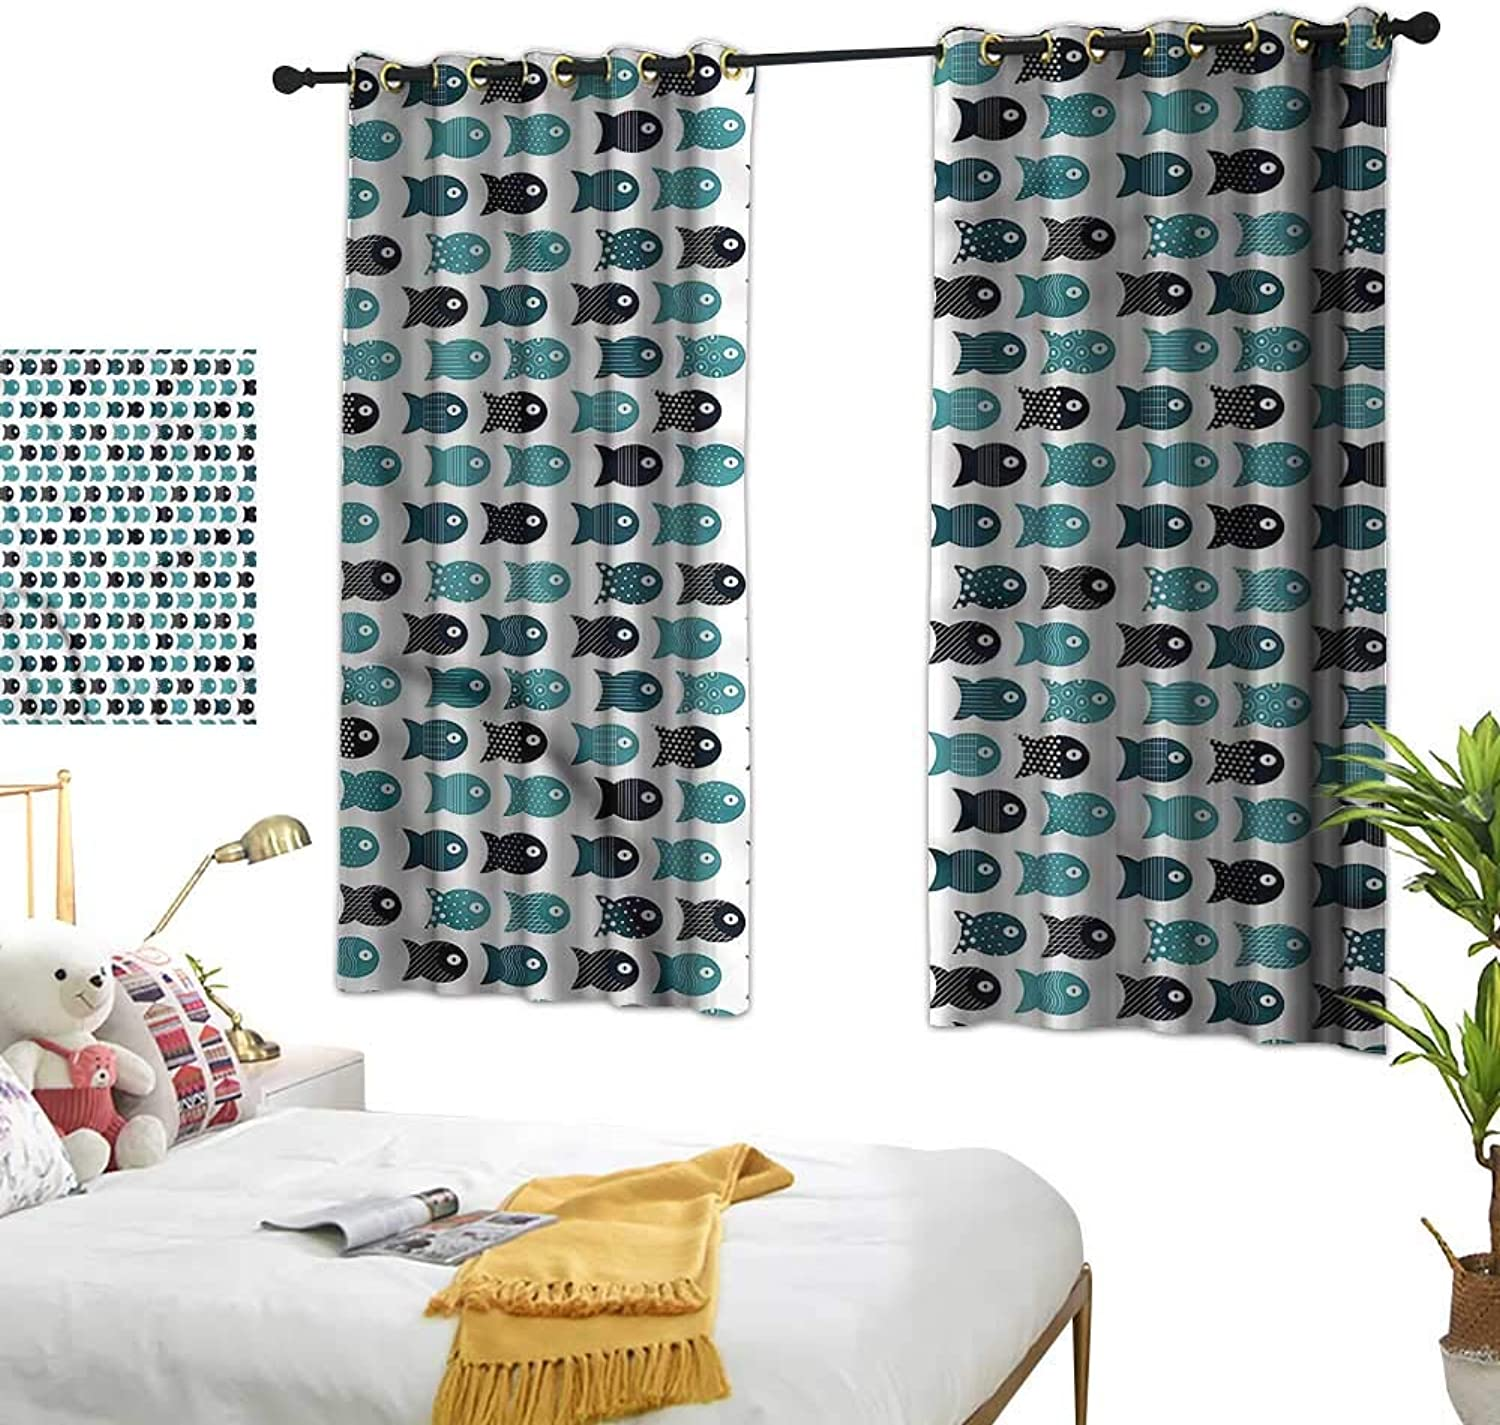 RenteriaDecor Aquarium Drapes Rhombuses with Squares Living Room Drapes W63 x L63